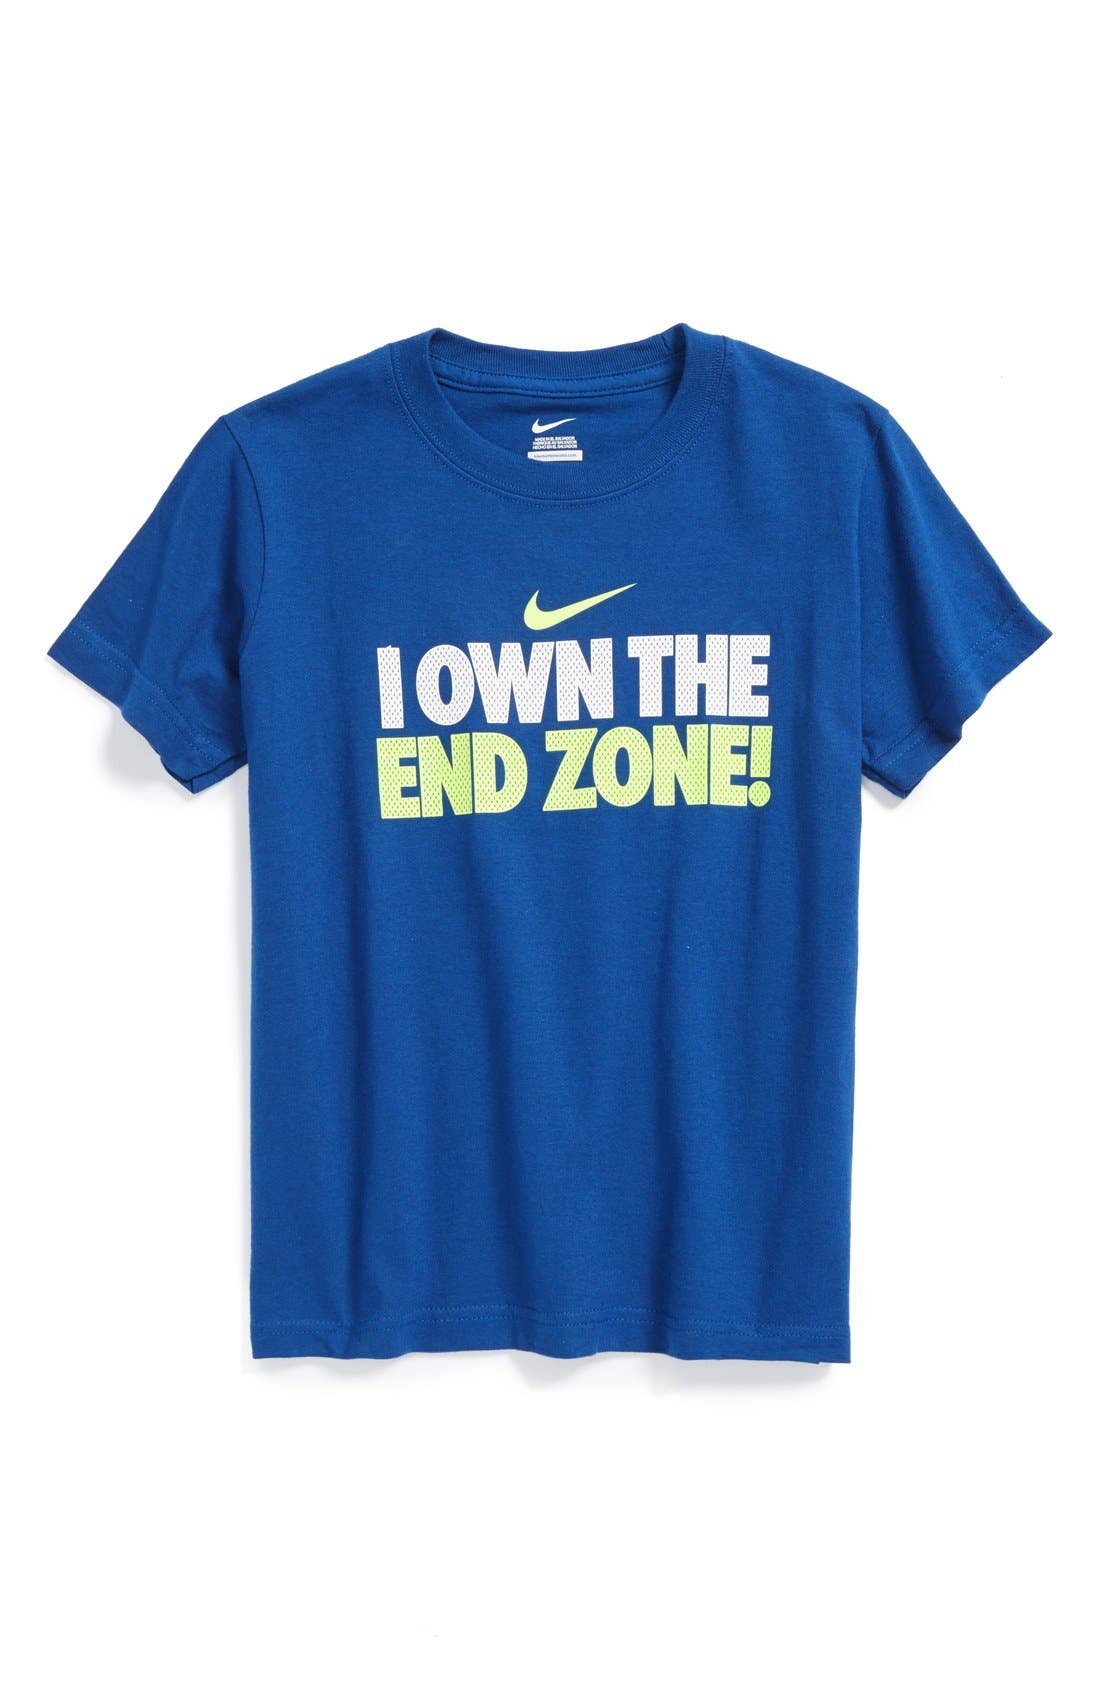 Main Image - Nike 'I Own the End Zone' Graphic T-Shirt (Little Boys)